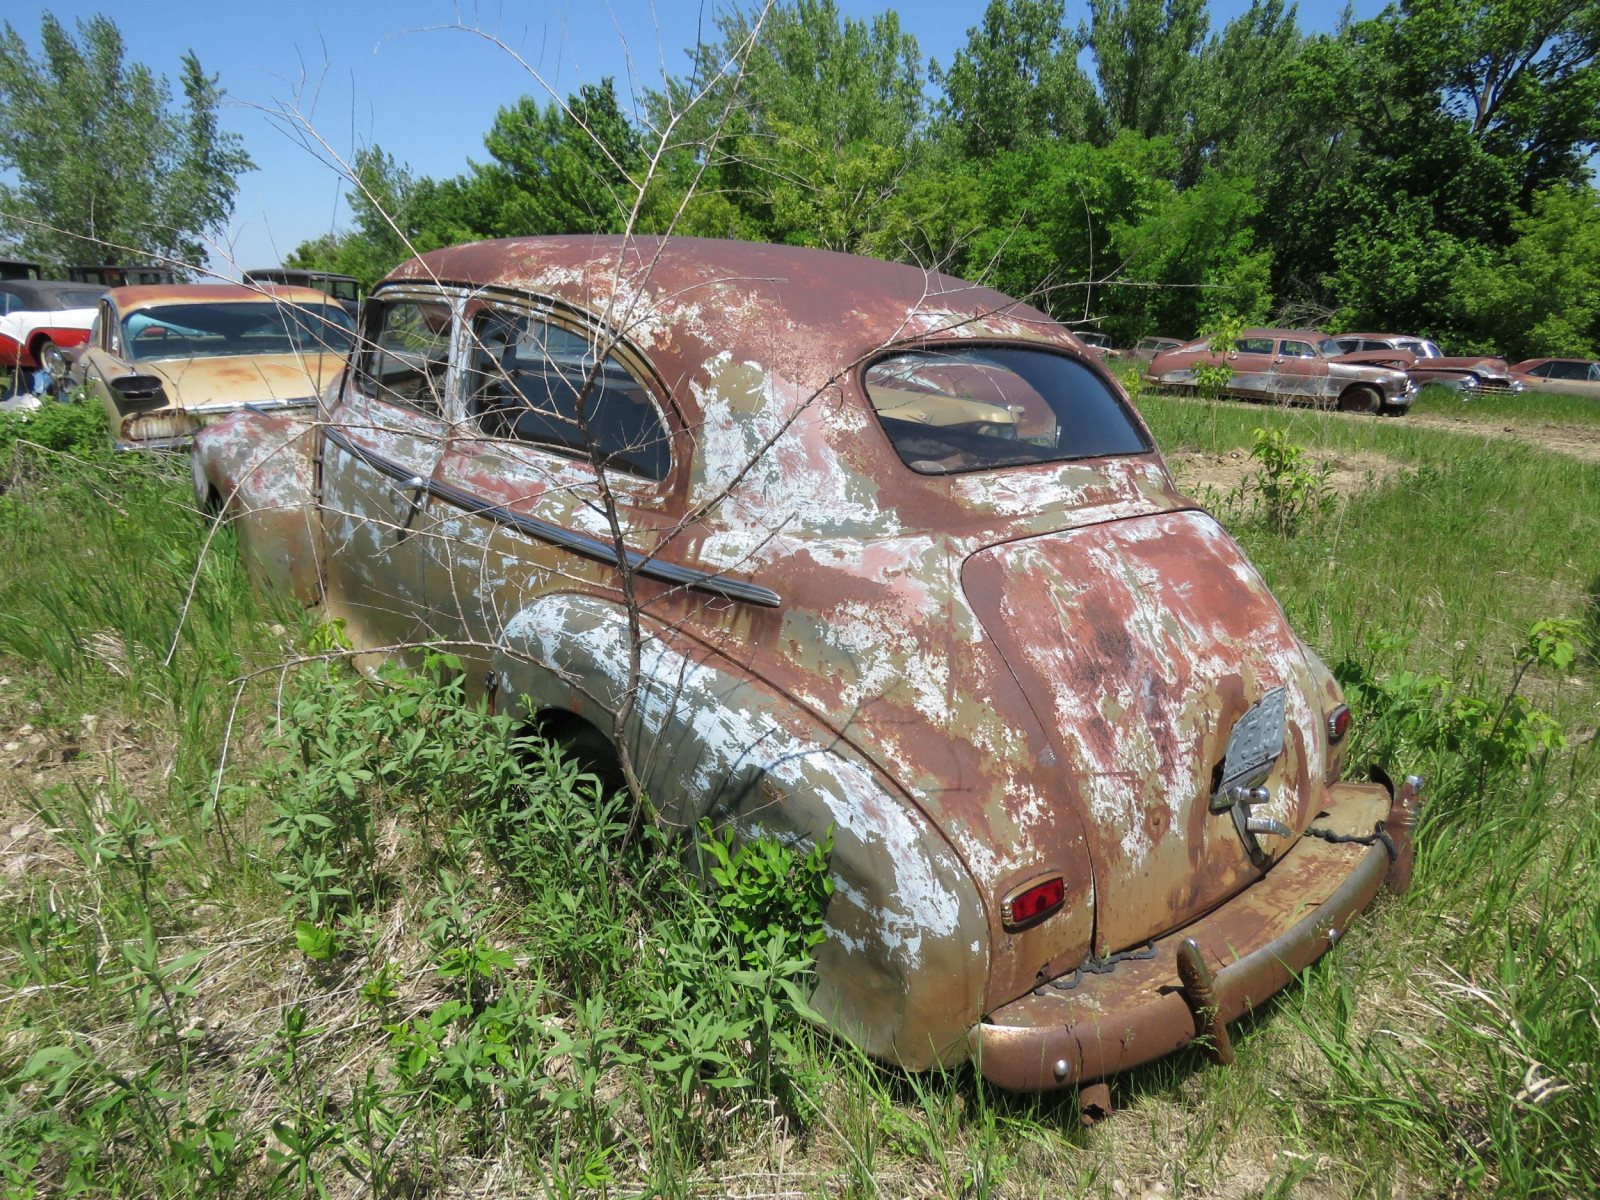 1941 Chevrolet 2dr Sedan for Project or parts - Image 5